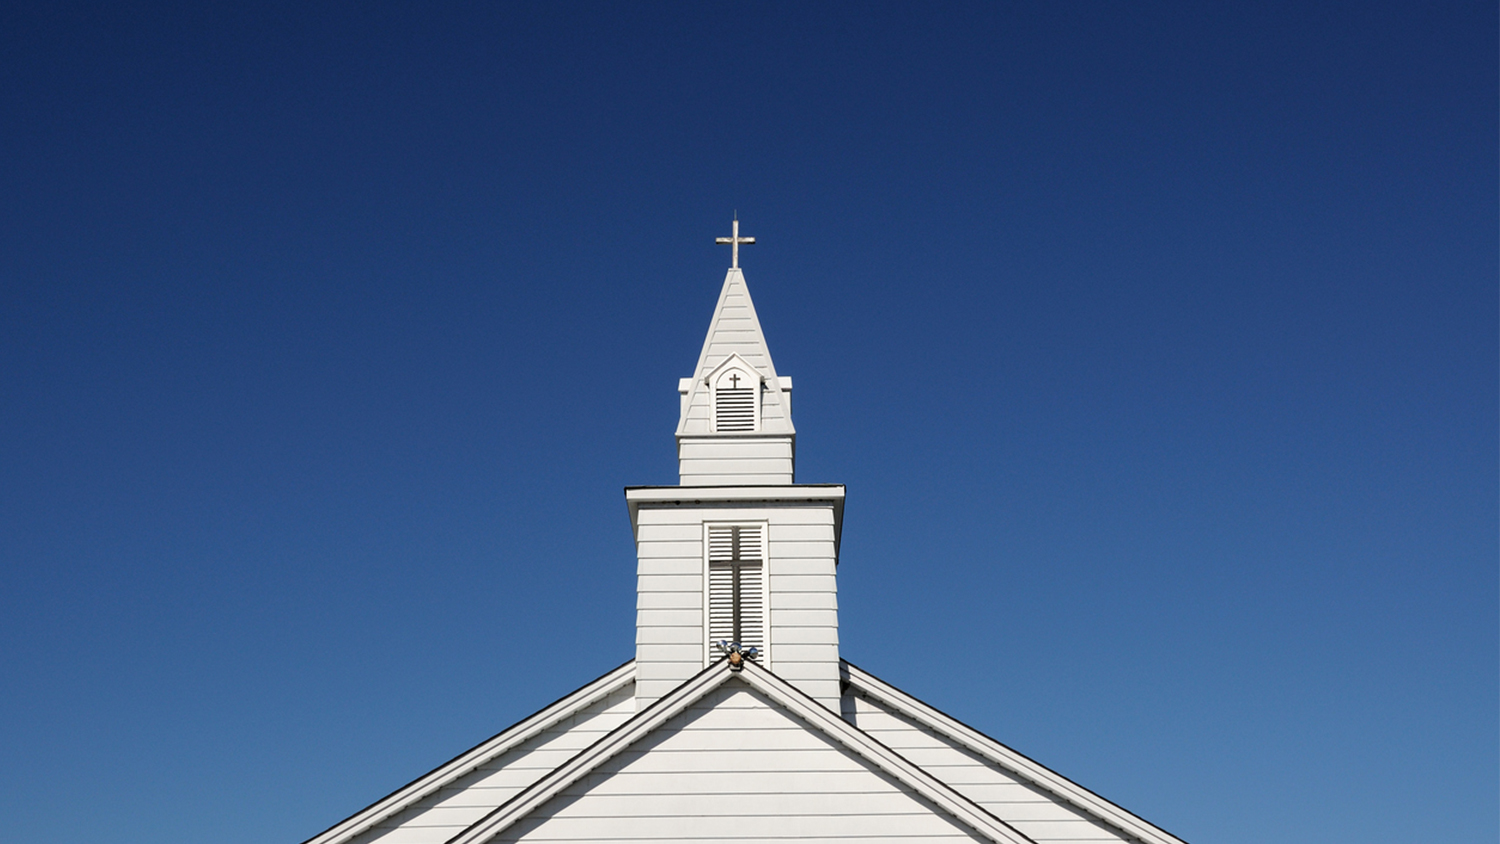 whitechurchsteeple-blog-052217